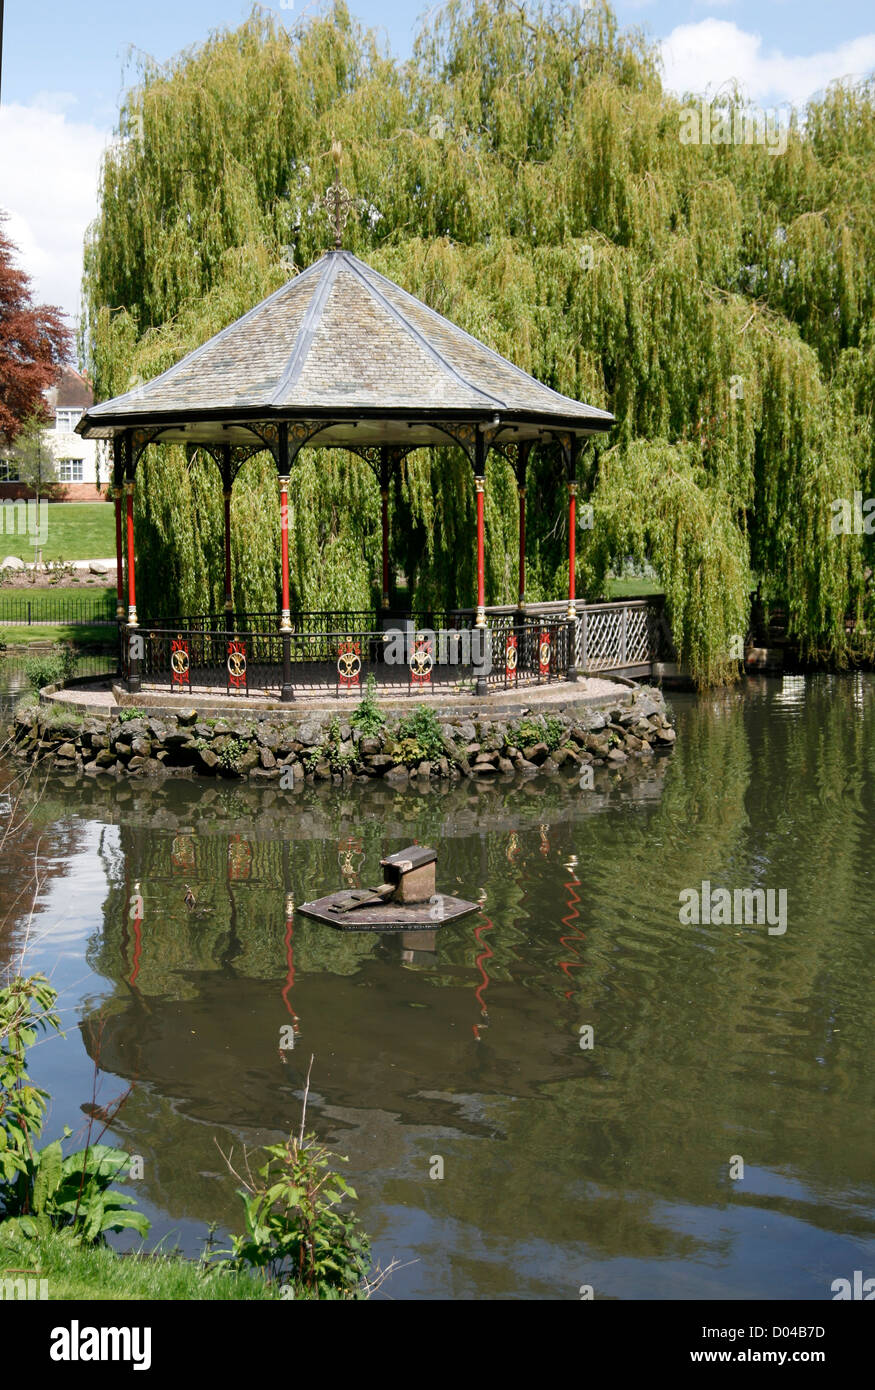 Bandstand on island in pond and weeping willow Gheluvelt Park Worcester Worcestershire England UK - Stock Image